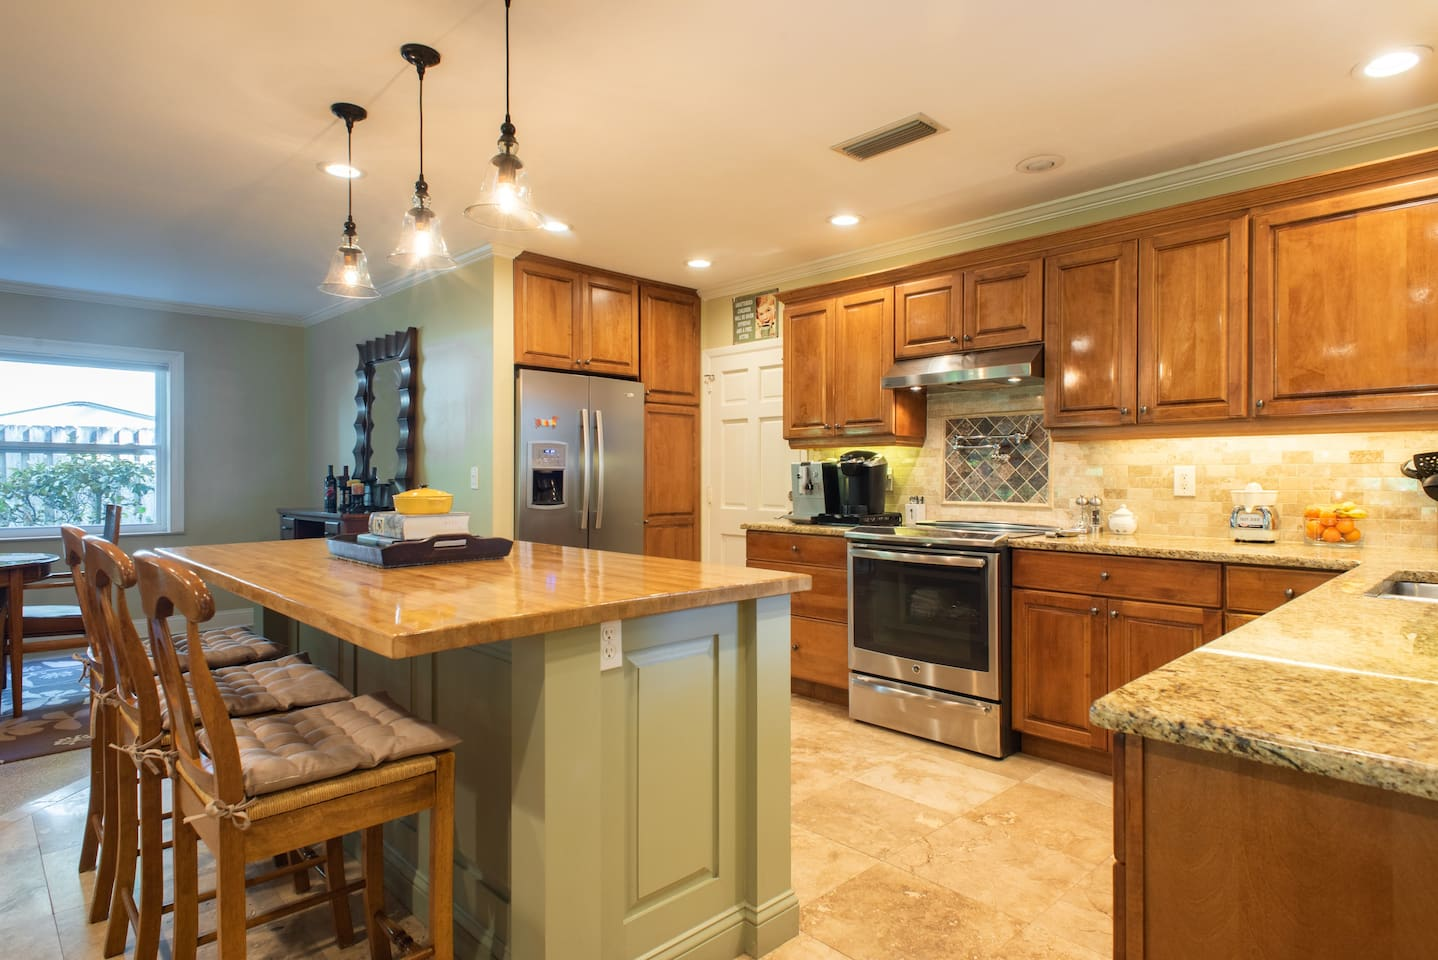 Full equipped kitchen available for you.